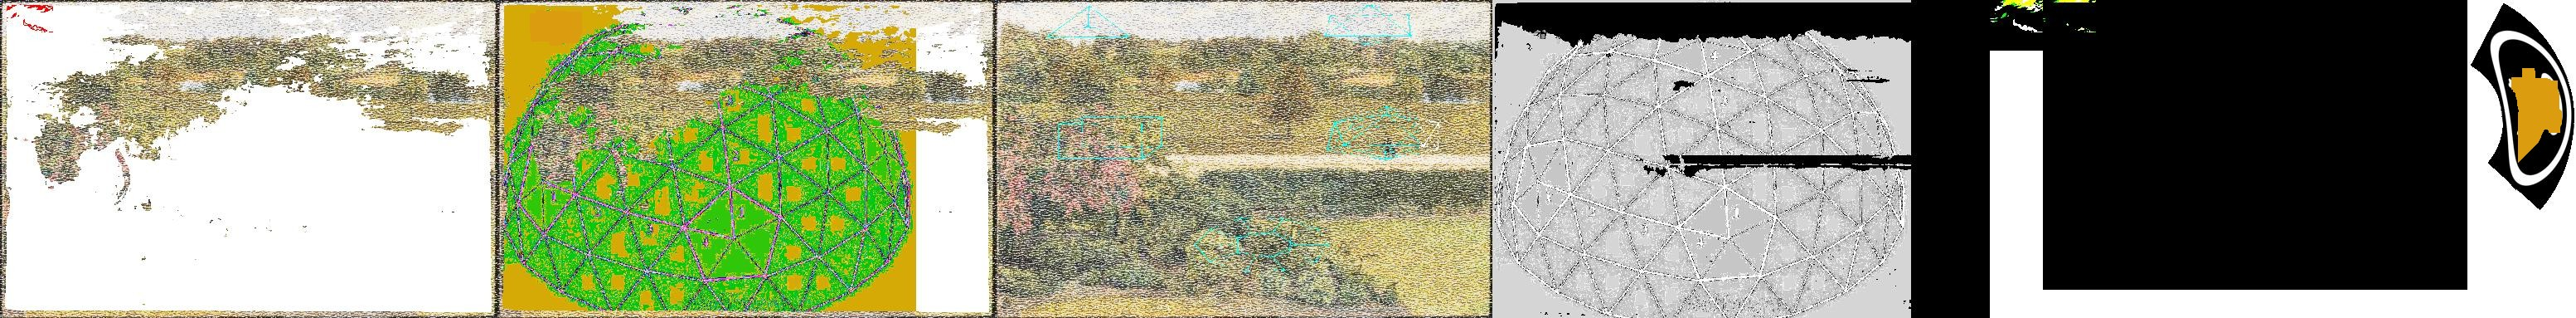 park,_sail,_dome,_education,_science_and_learning--2474-45513-59238-8275.jpg